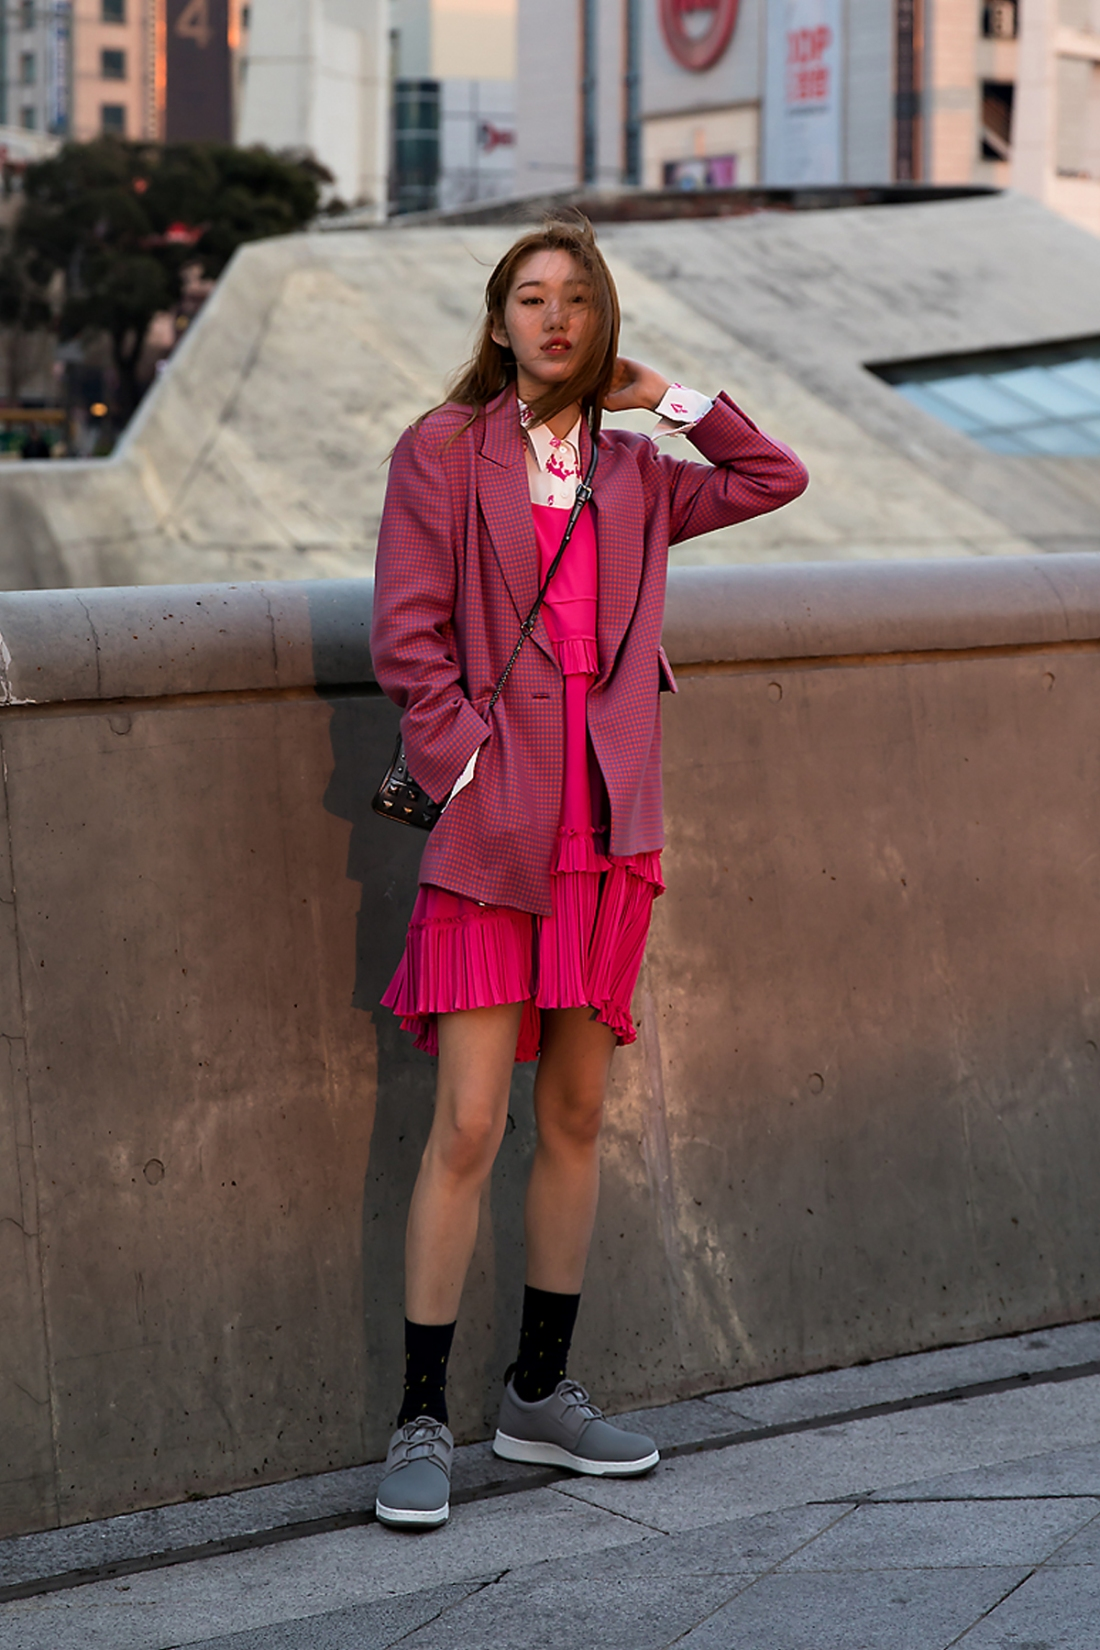 Jang Yeseung, Street Fashion 2017 in Seoul.jpg